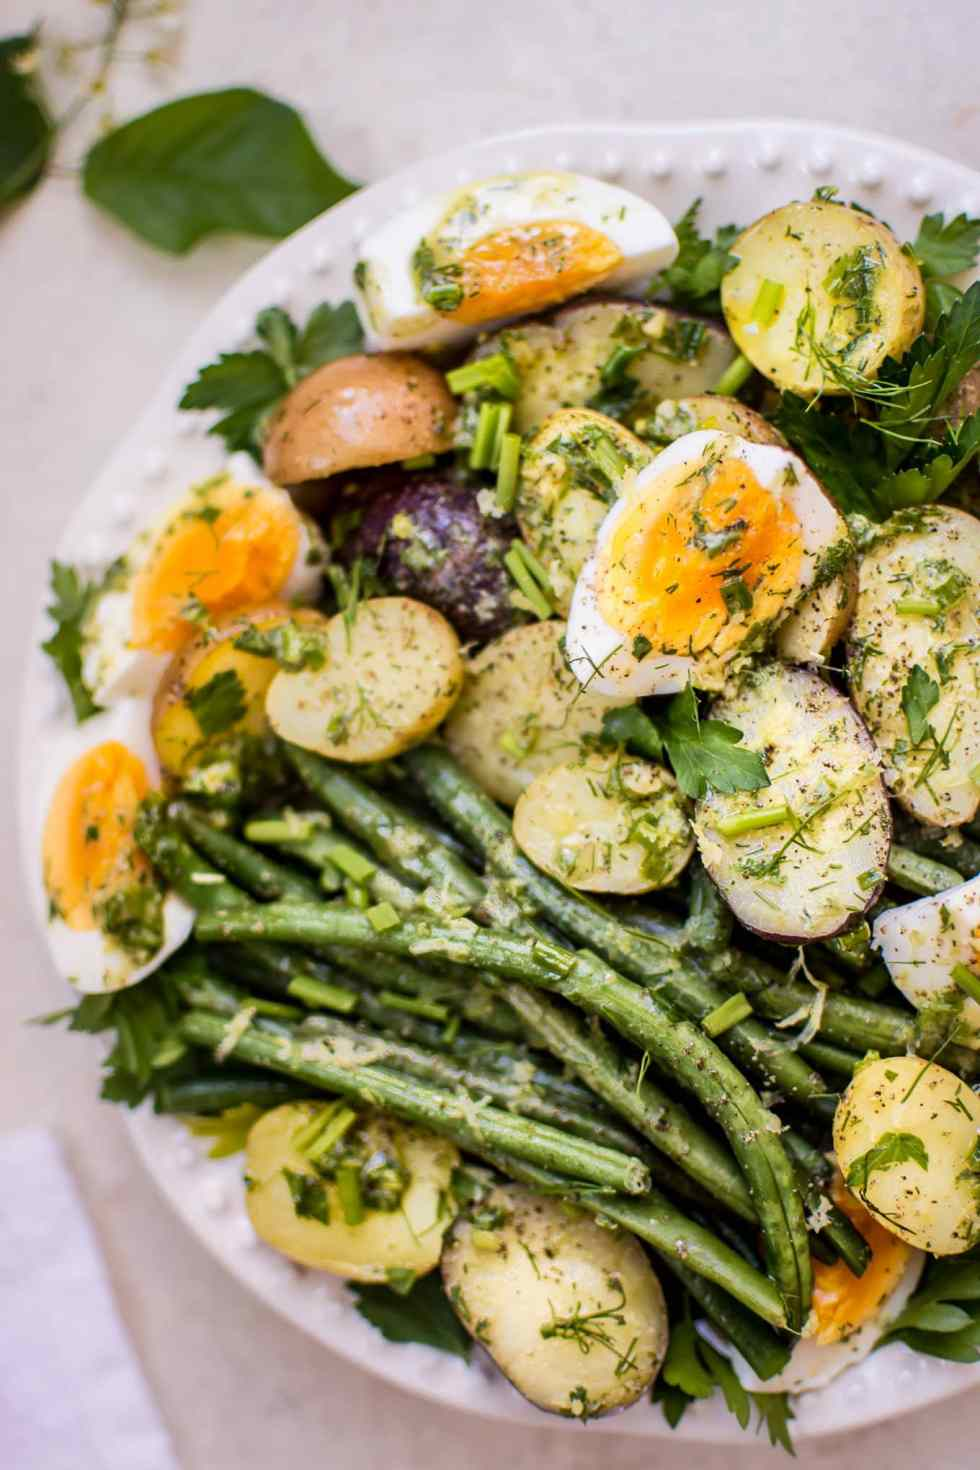 Green Beans Recipes-Potato and Green Bean Salad with Eggs